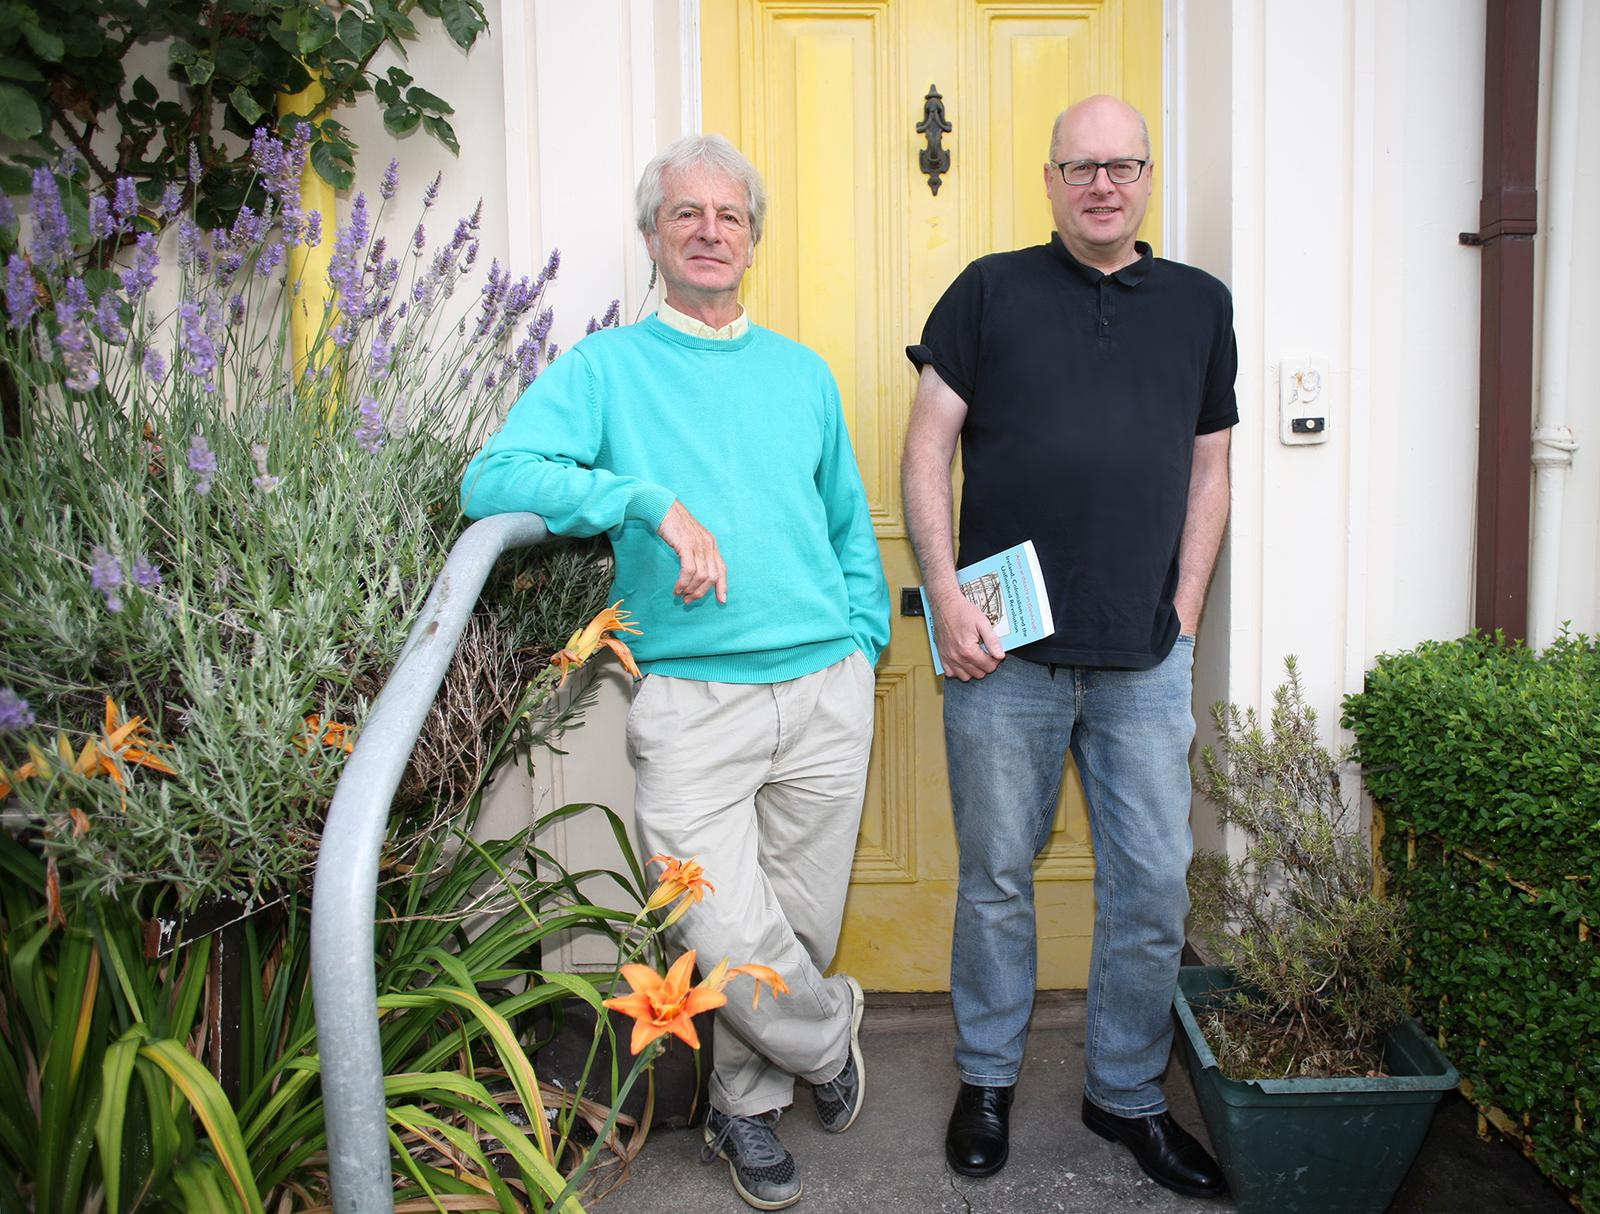 OPENING DOOR TO PAST: Co-authors Robbie McVeigh and Bill Rolston